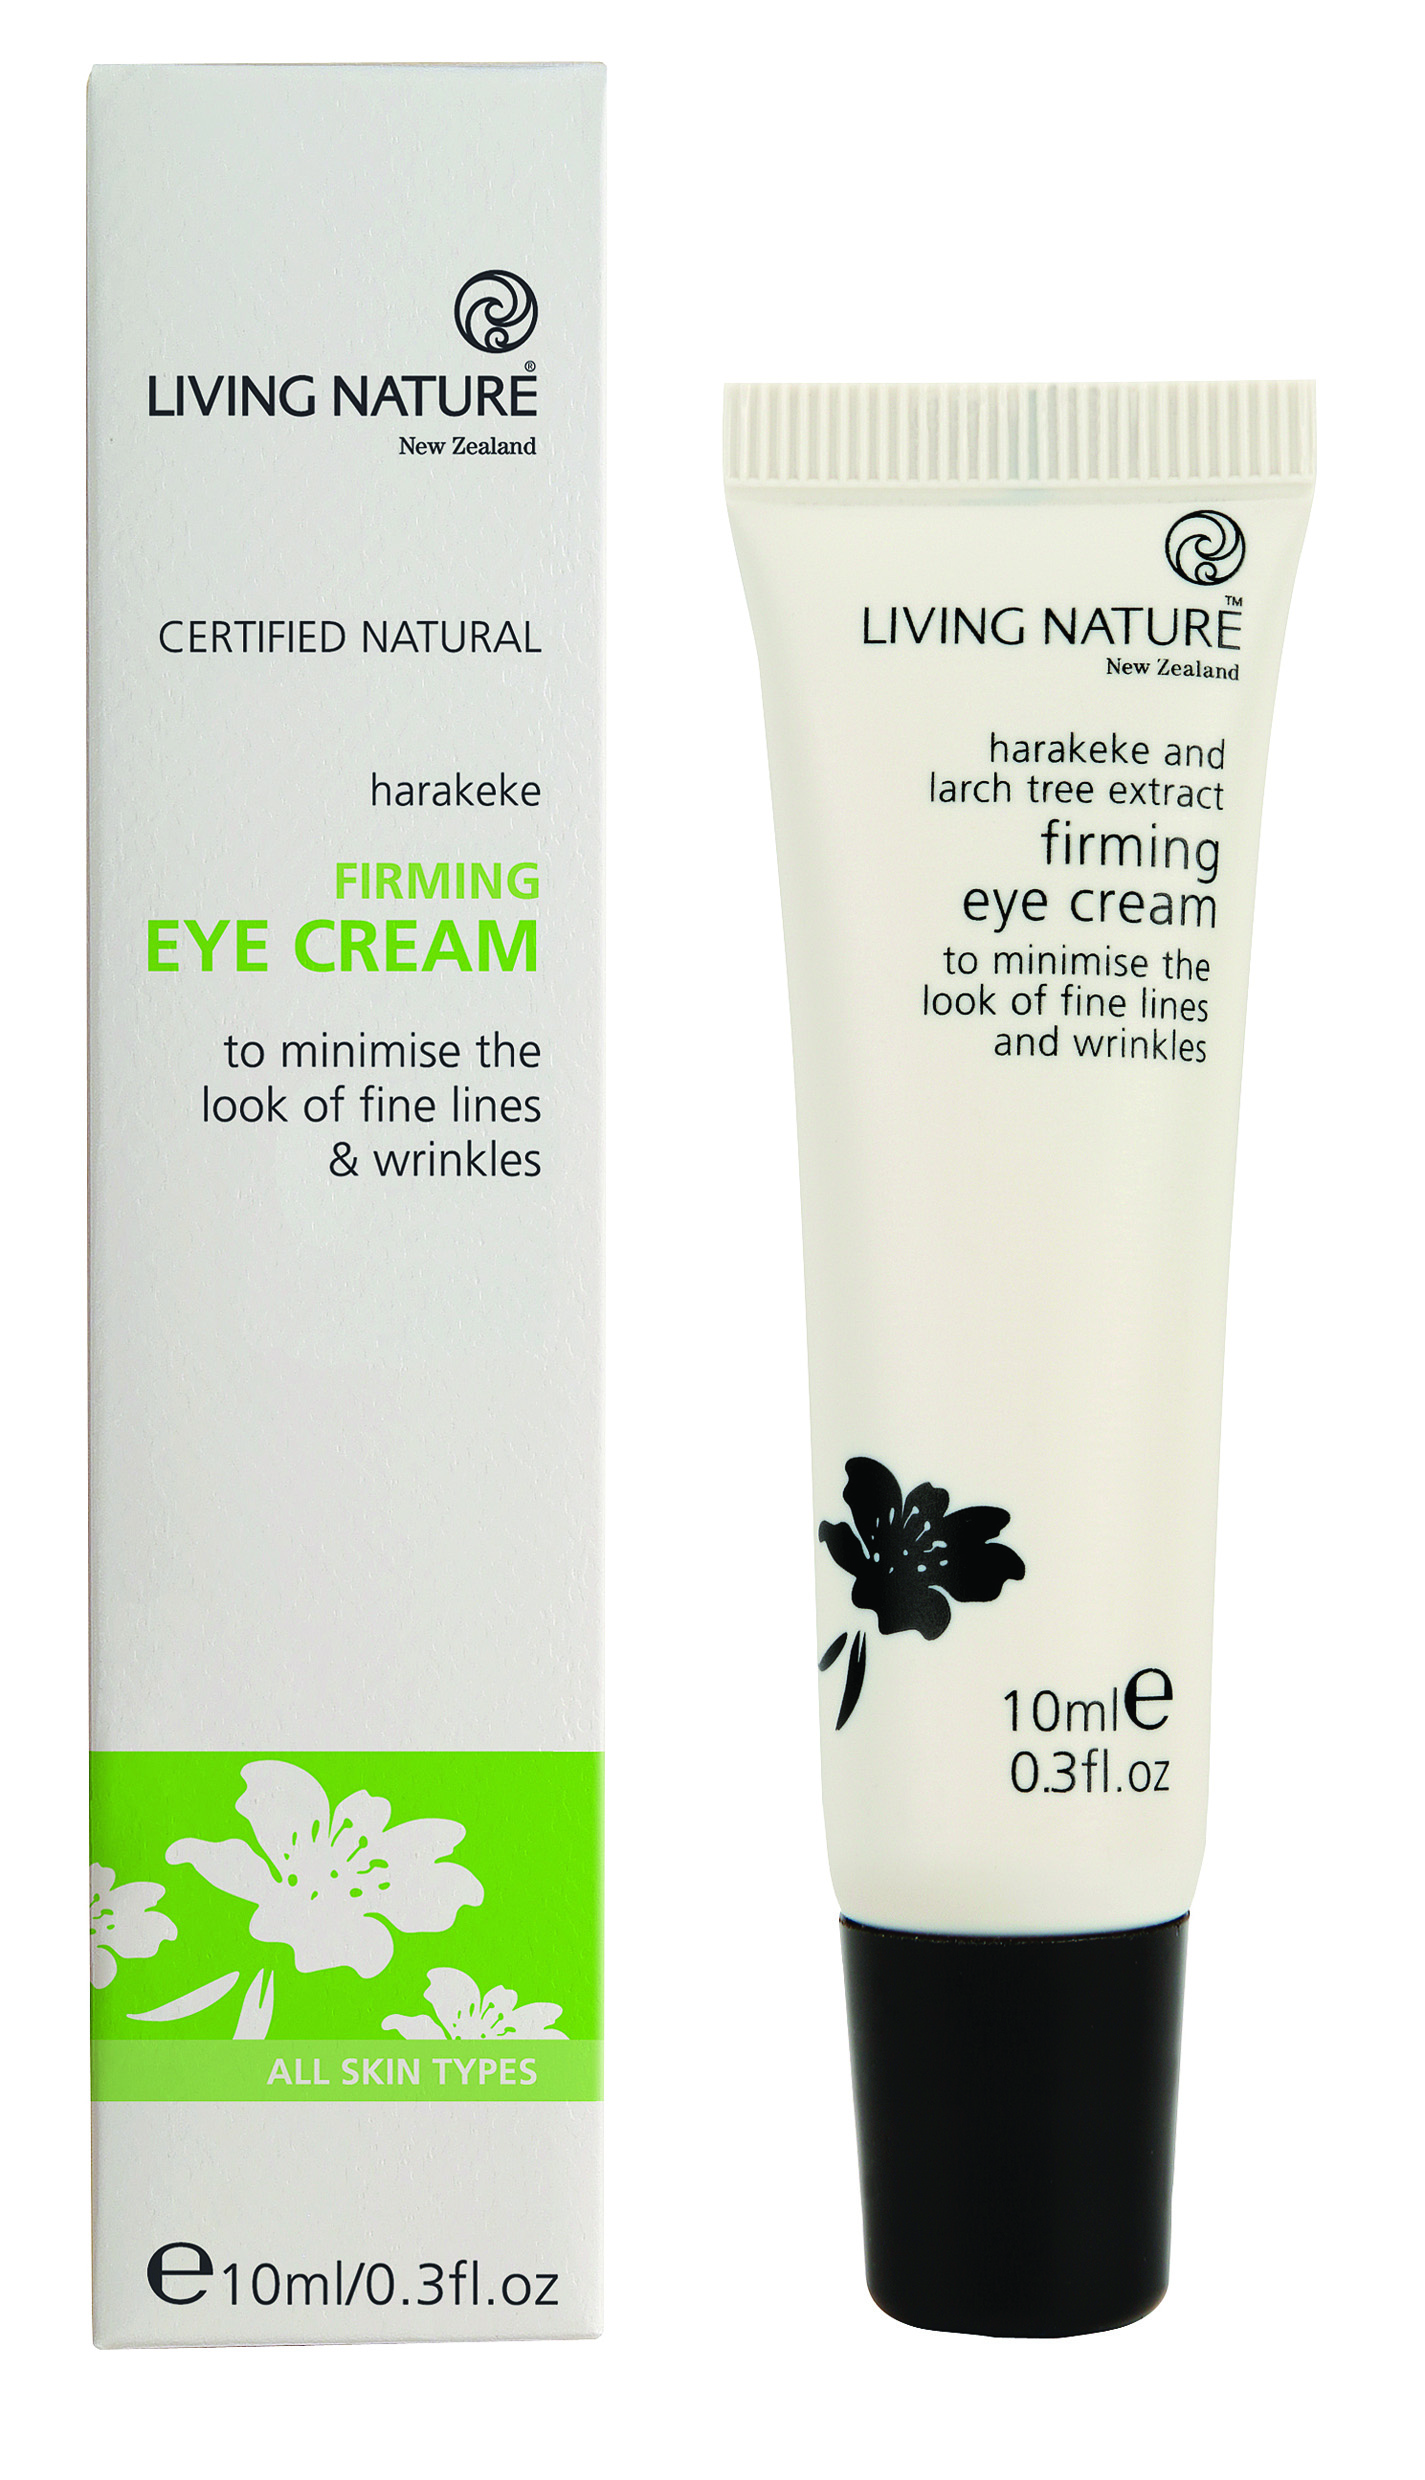 ACNE-Firming Eye Cream